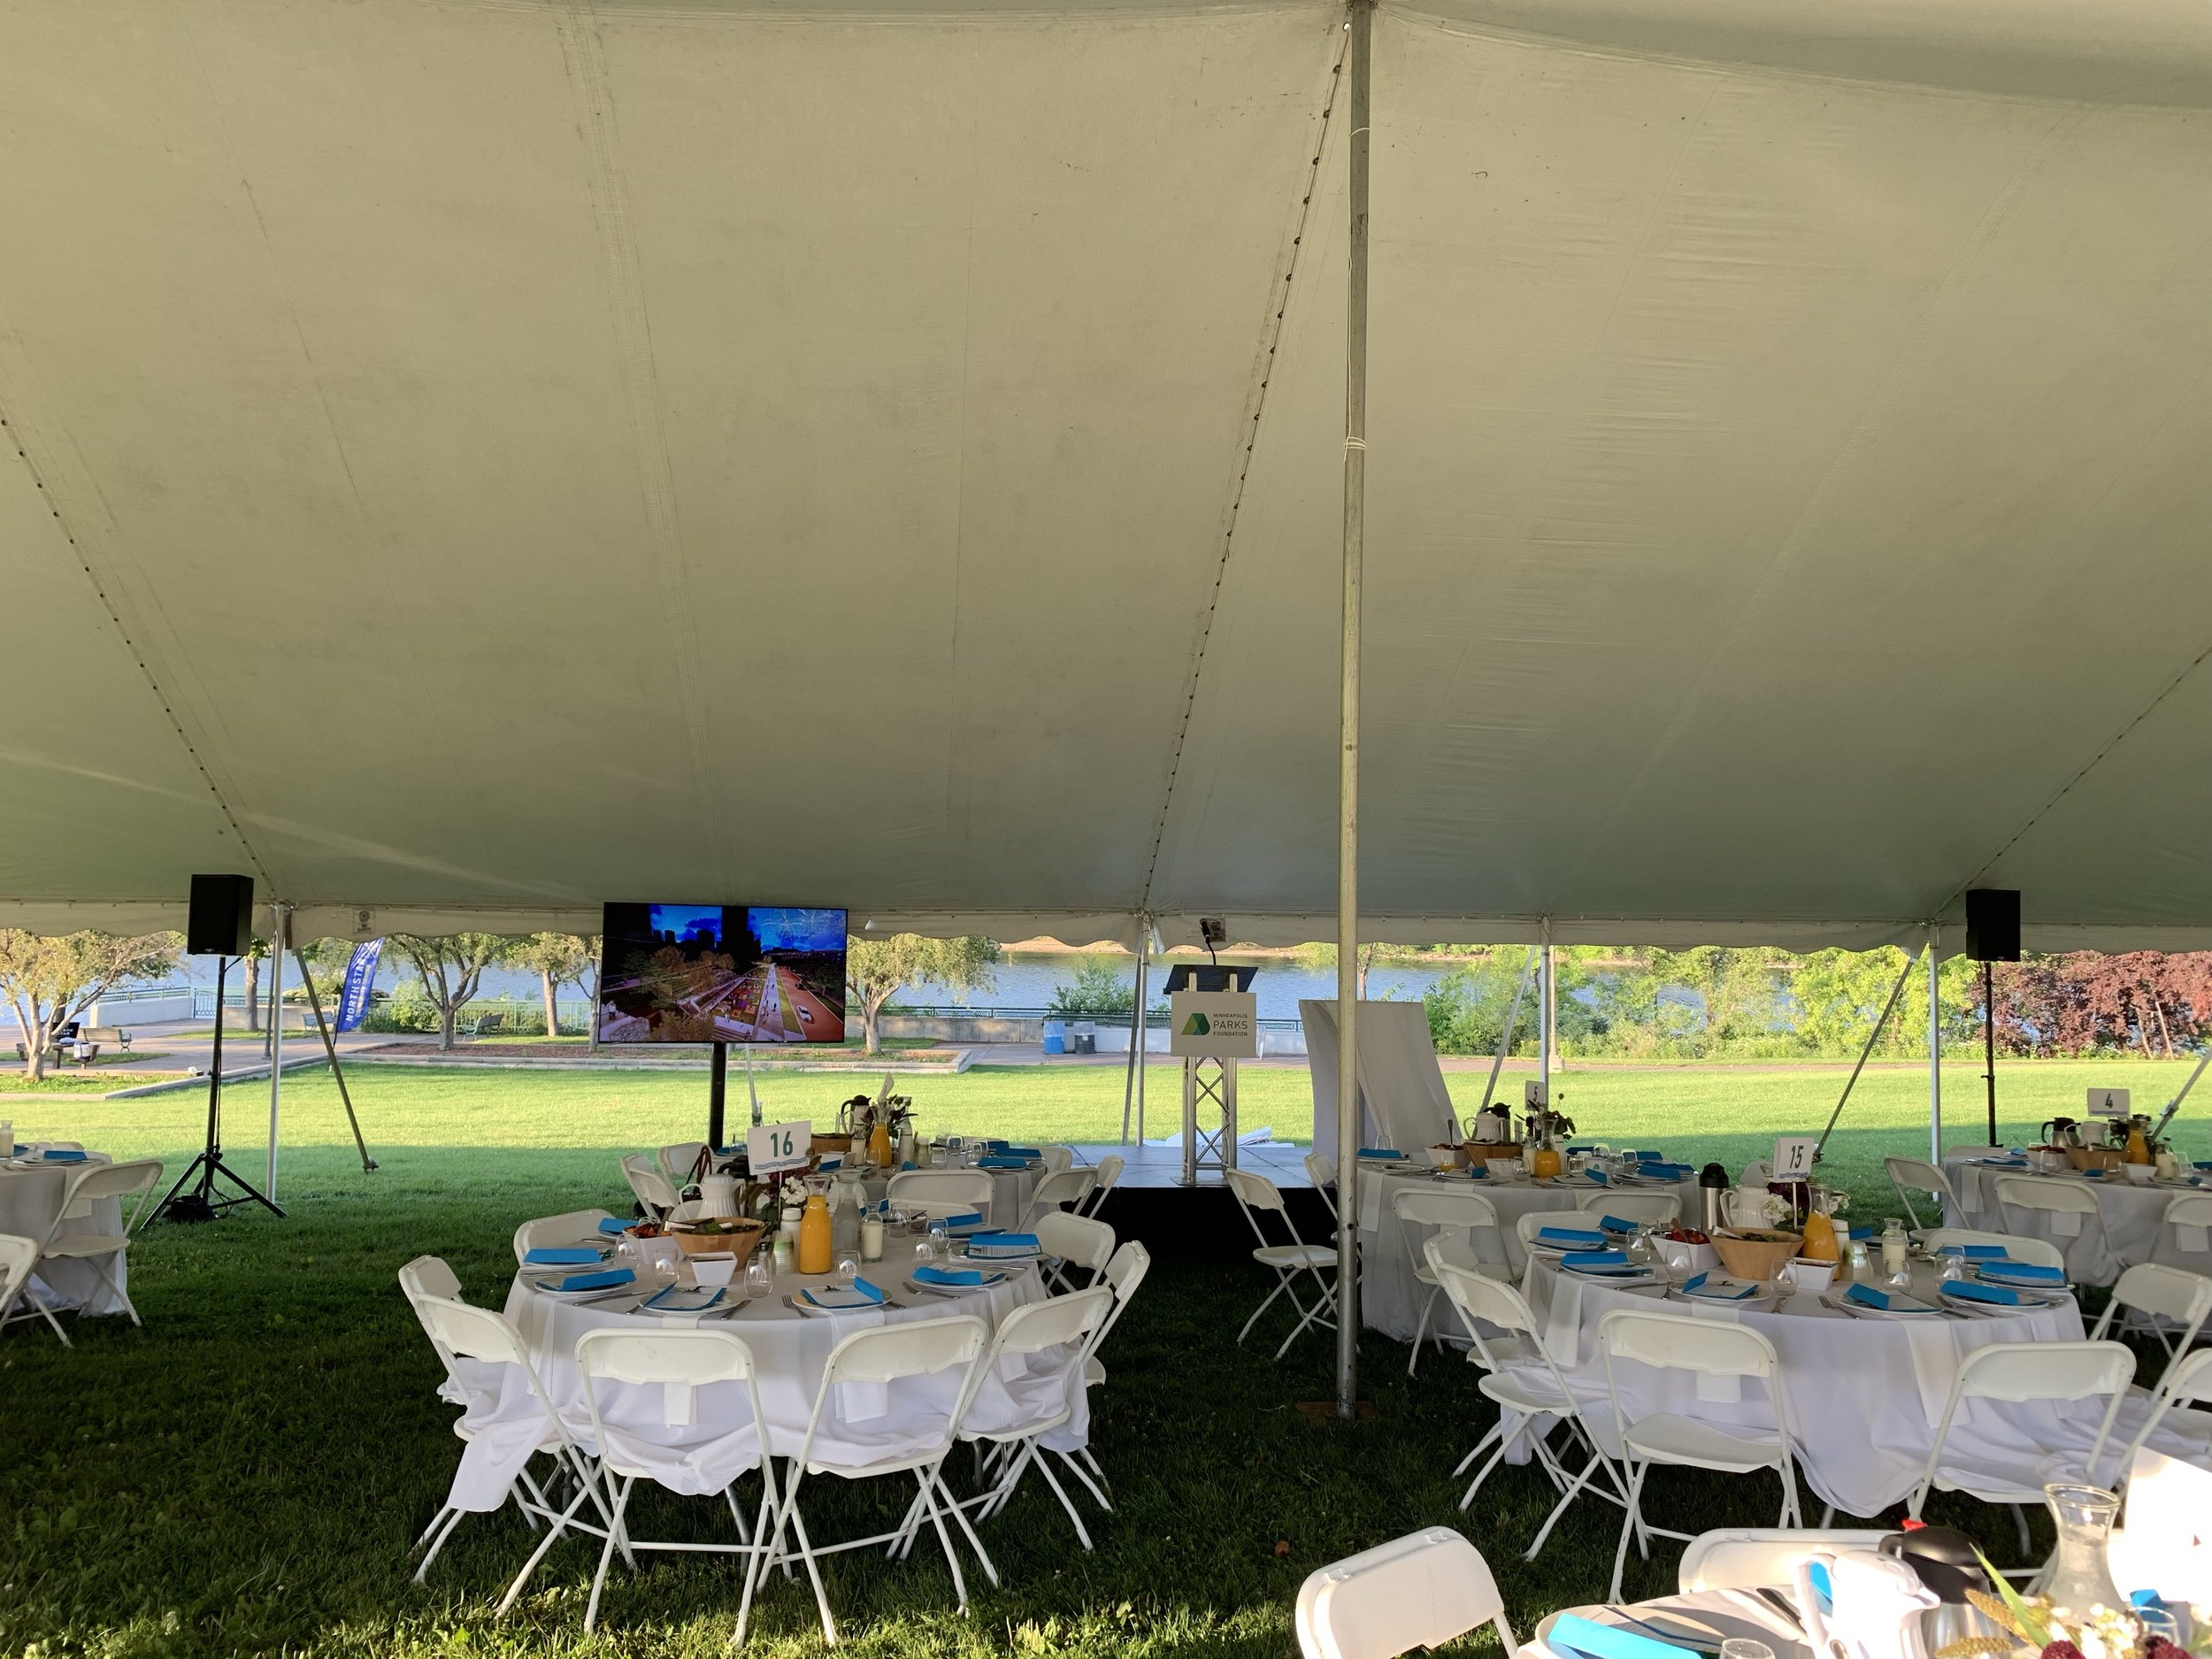 Picture of AV for You Audio Visual Rental Equipment at a Minneapolis Tent Event